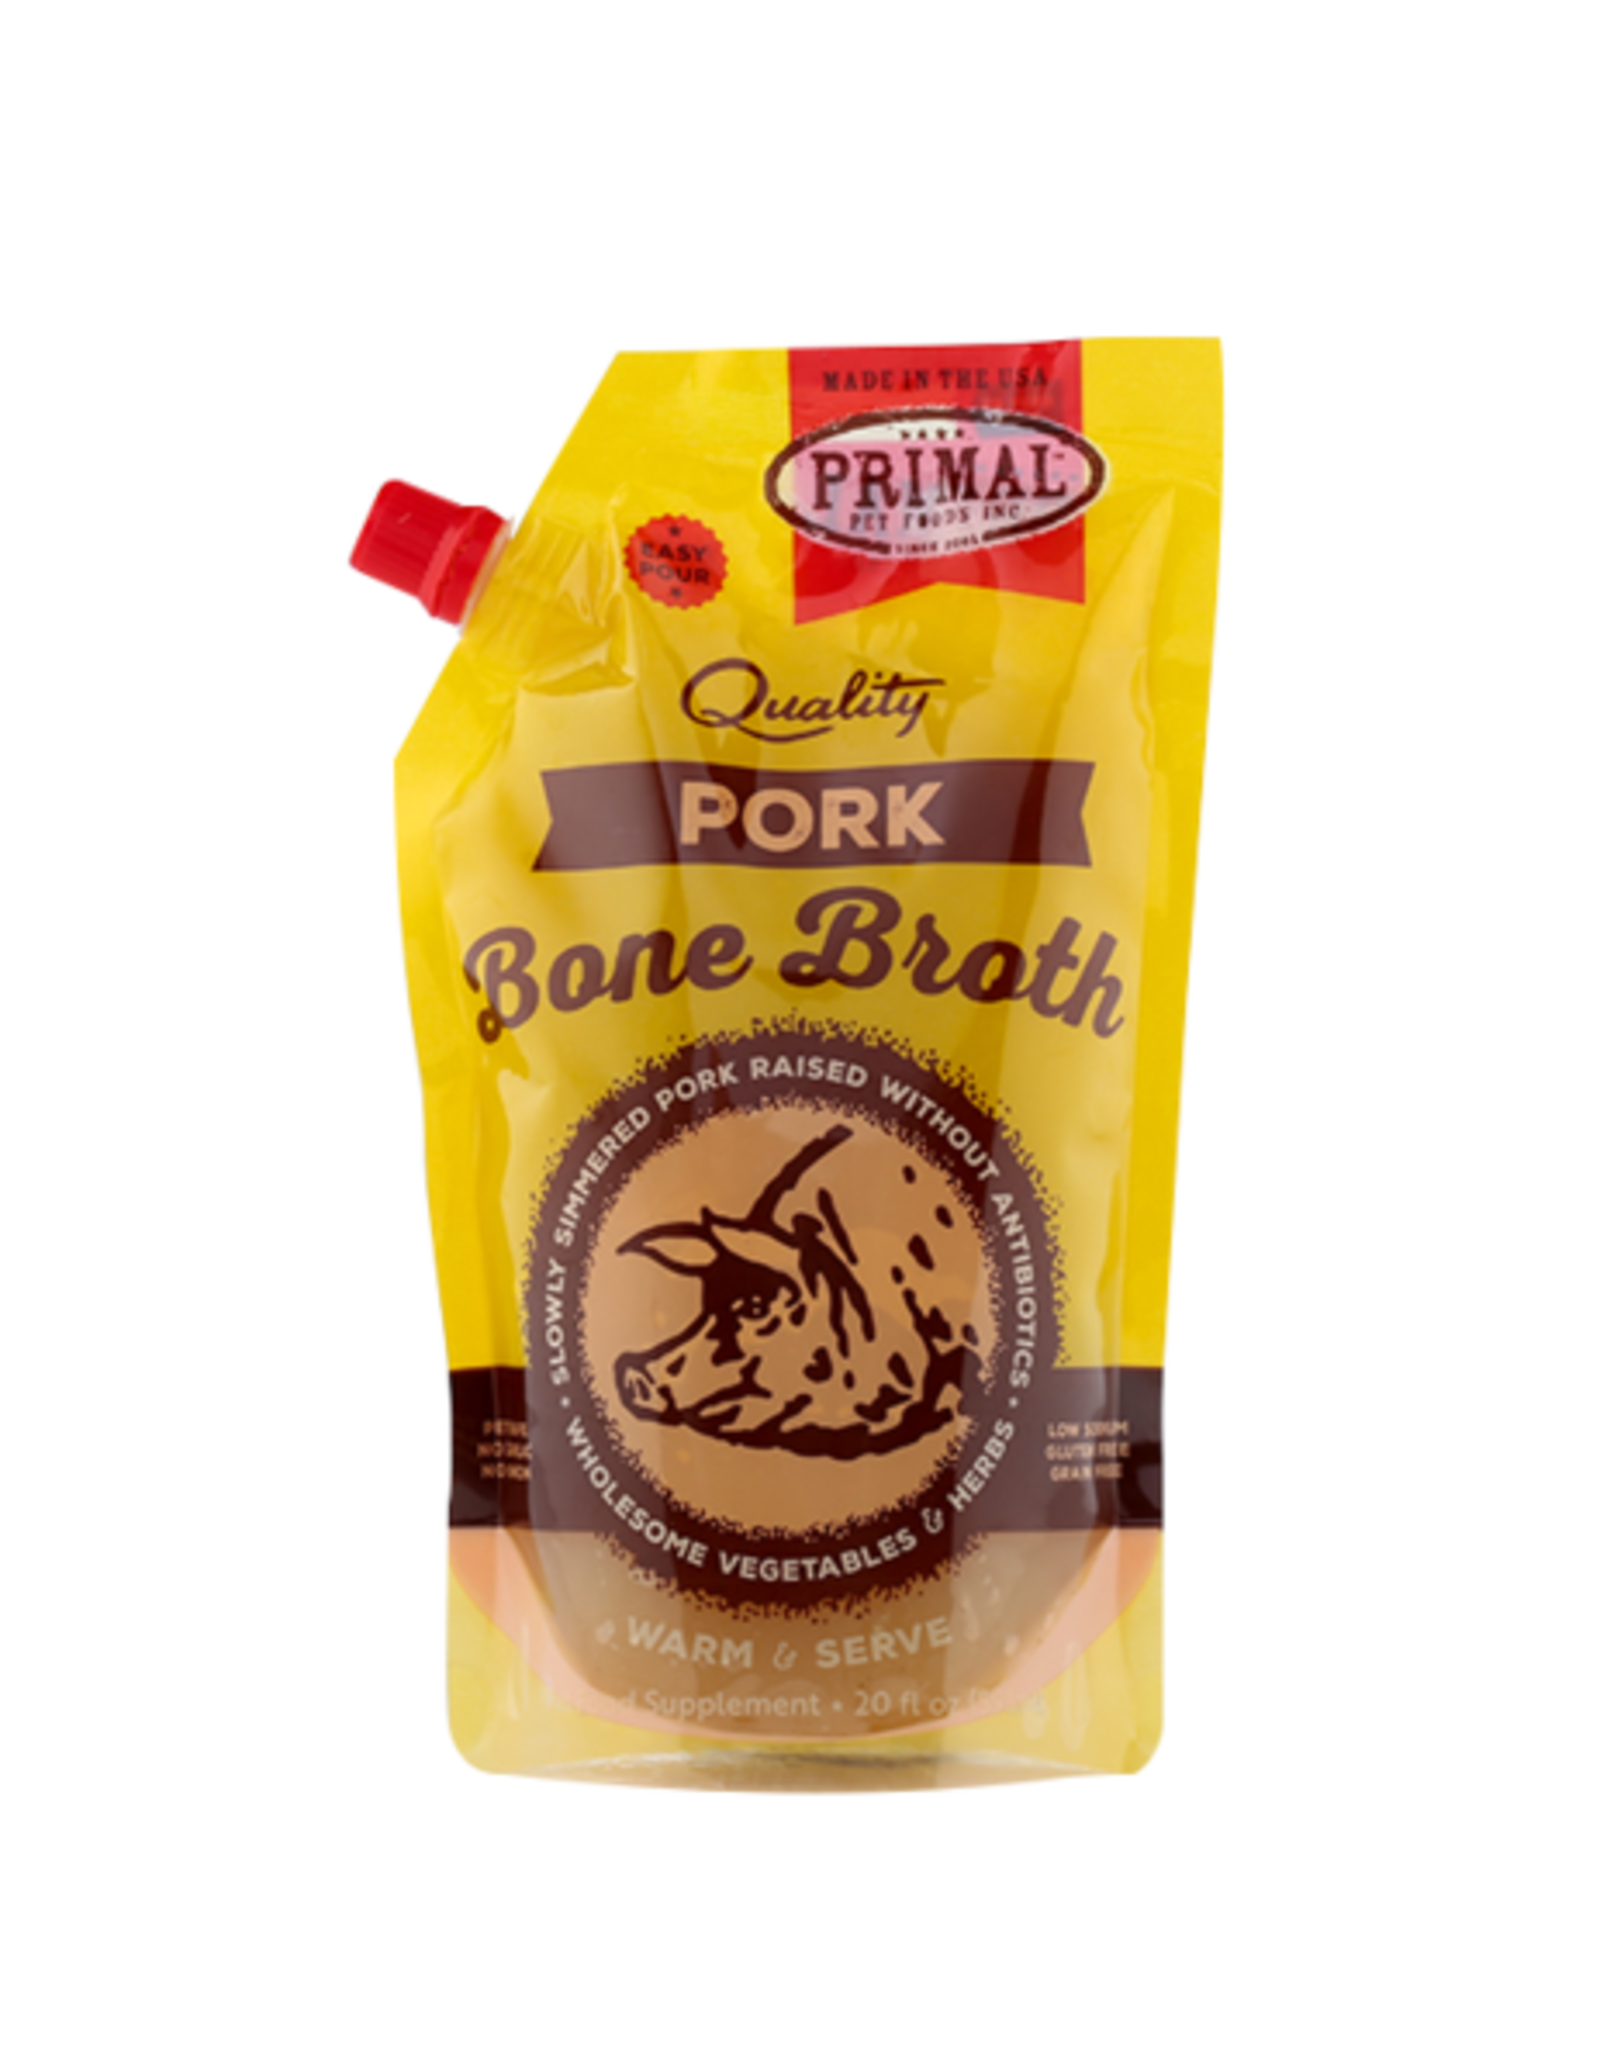 Primal Primal Frozen Bone Broth